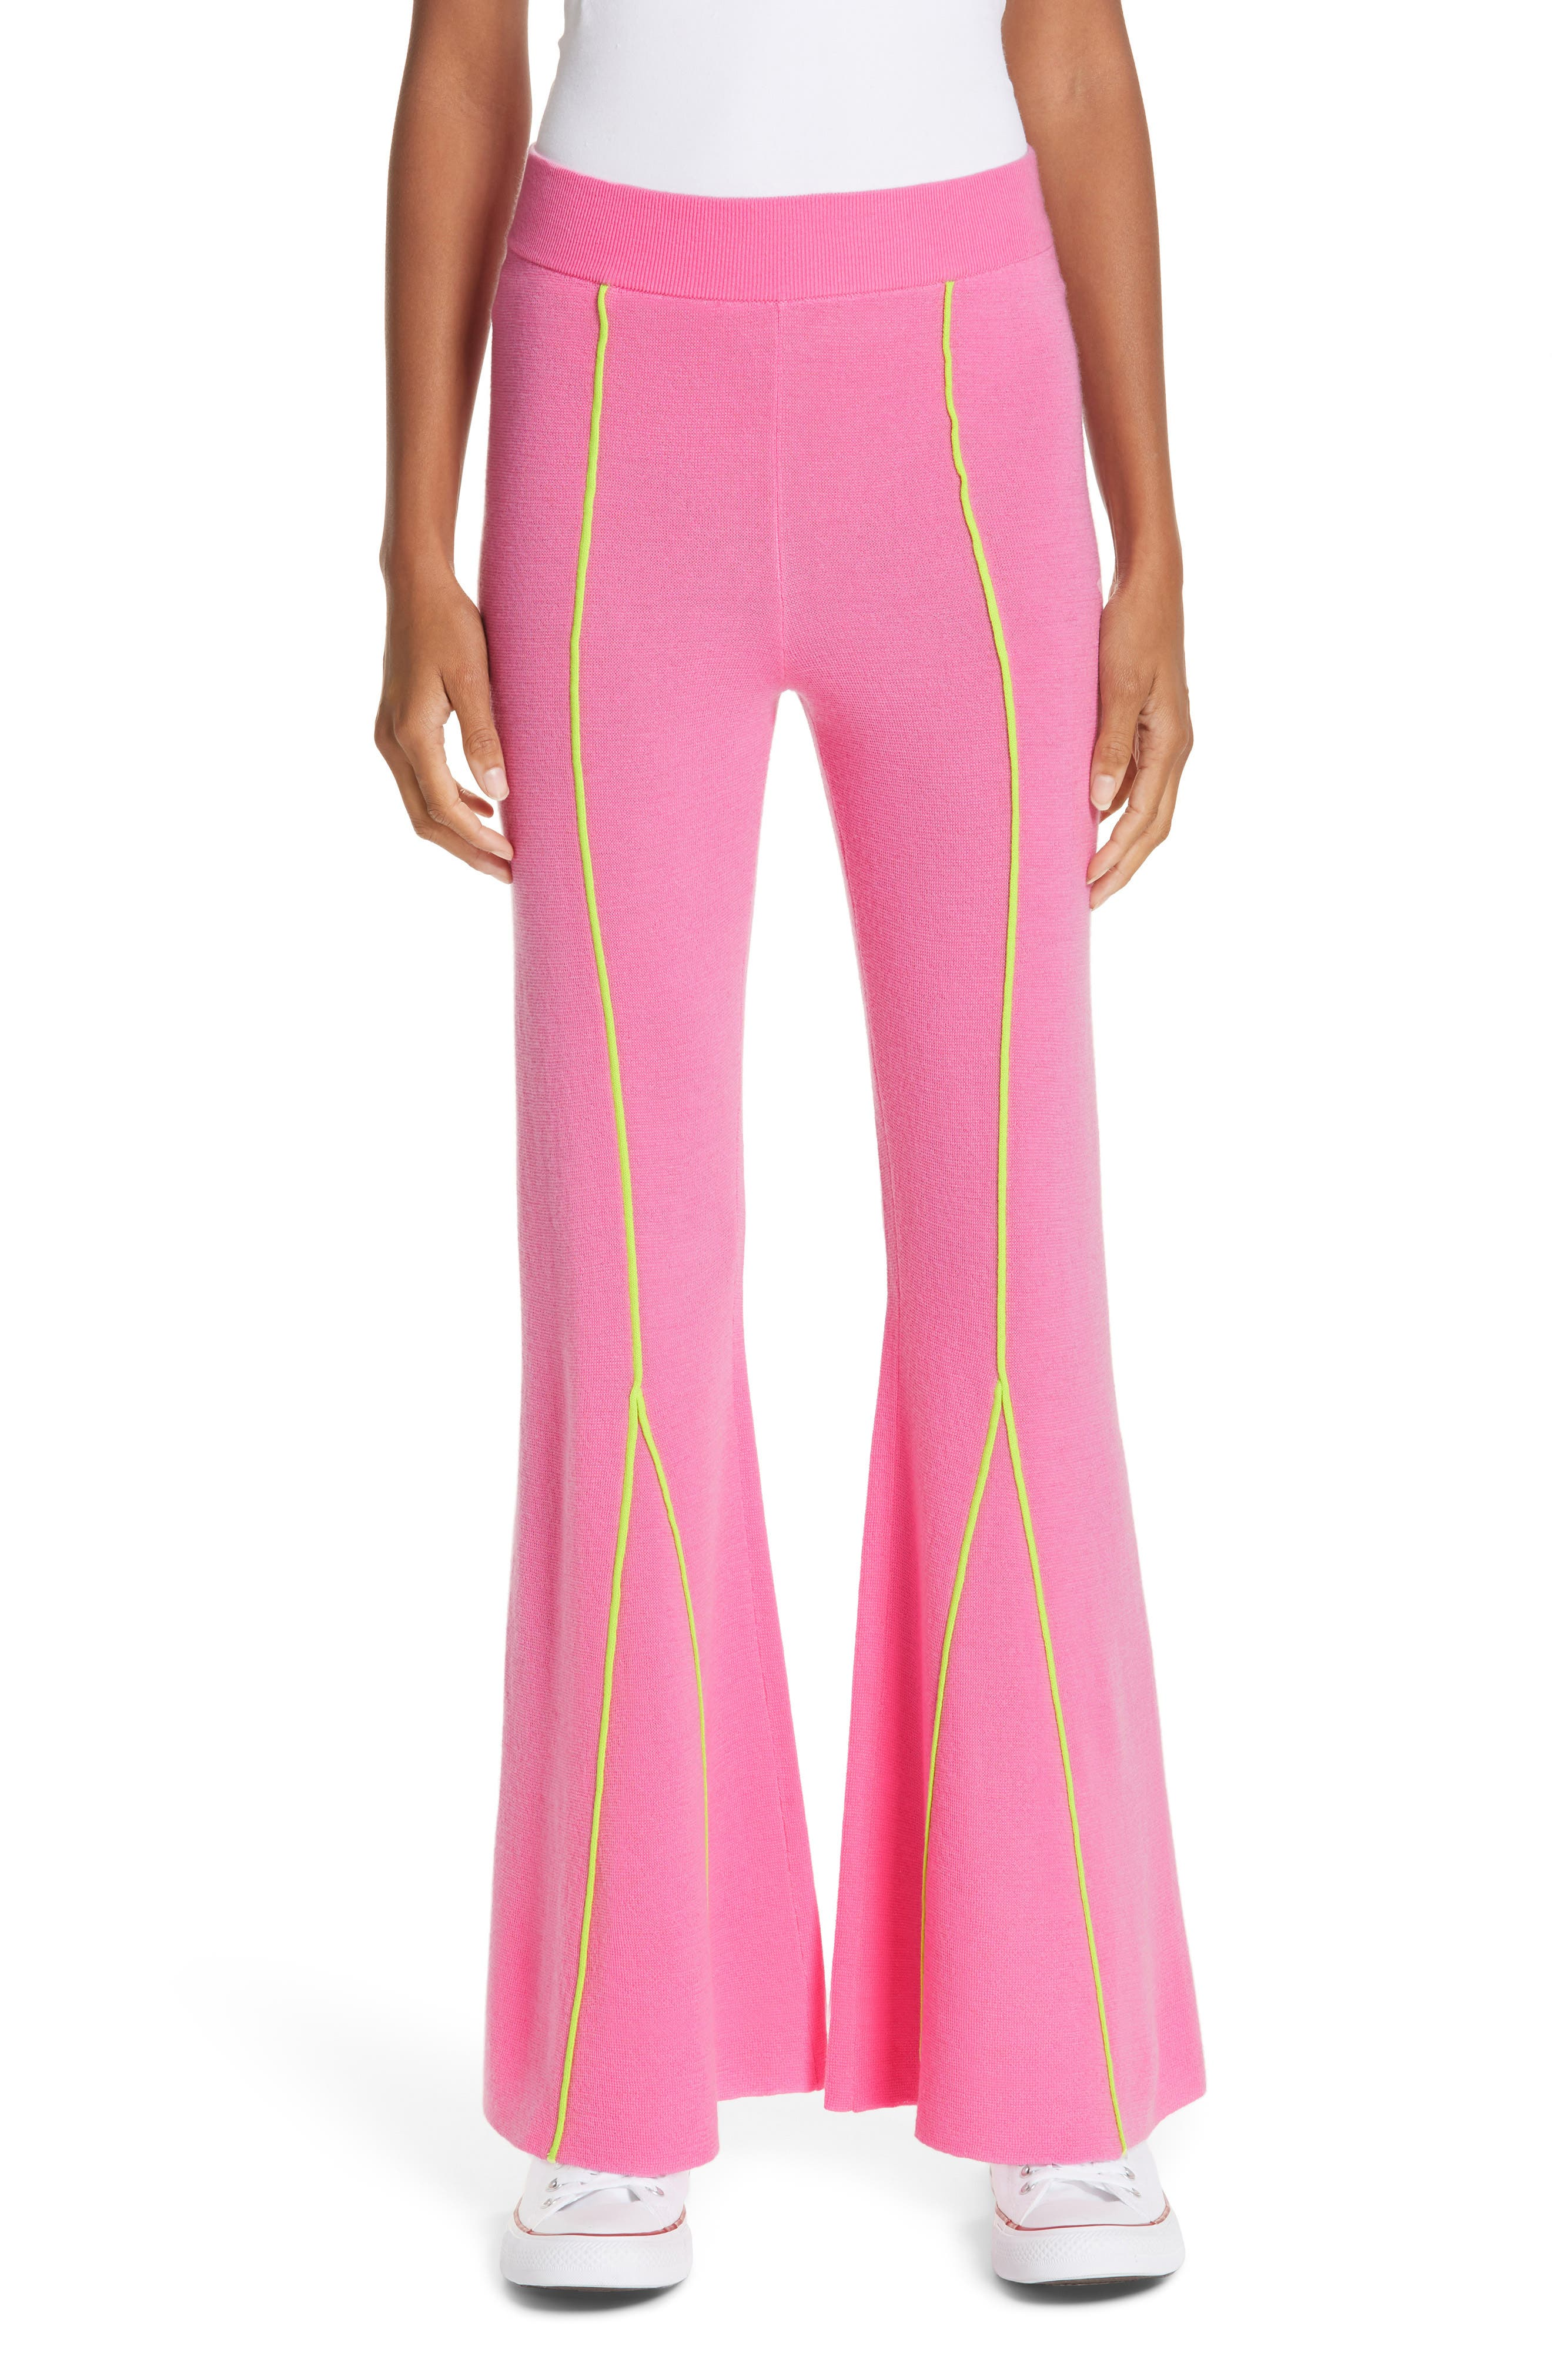 Victor Glemaud Knitted Flare Wool Pants, Pink